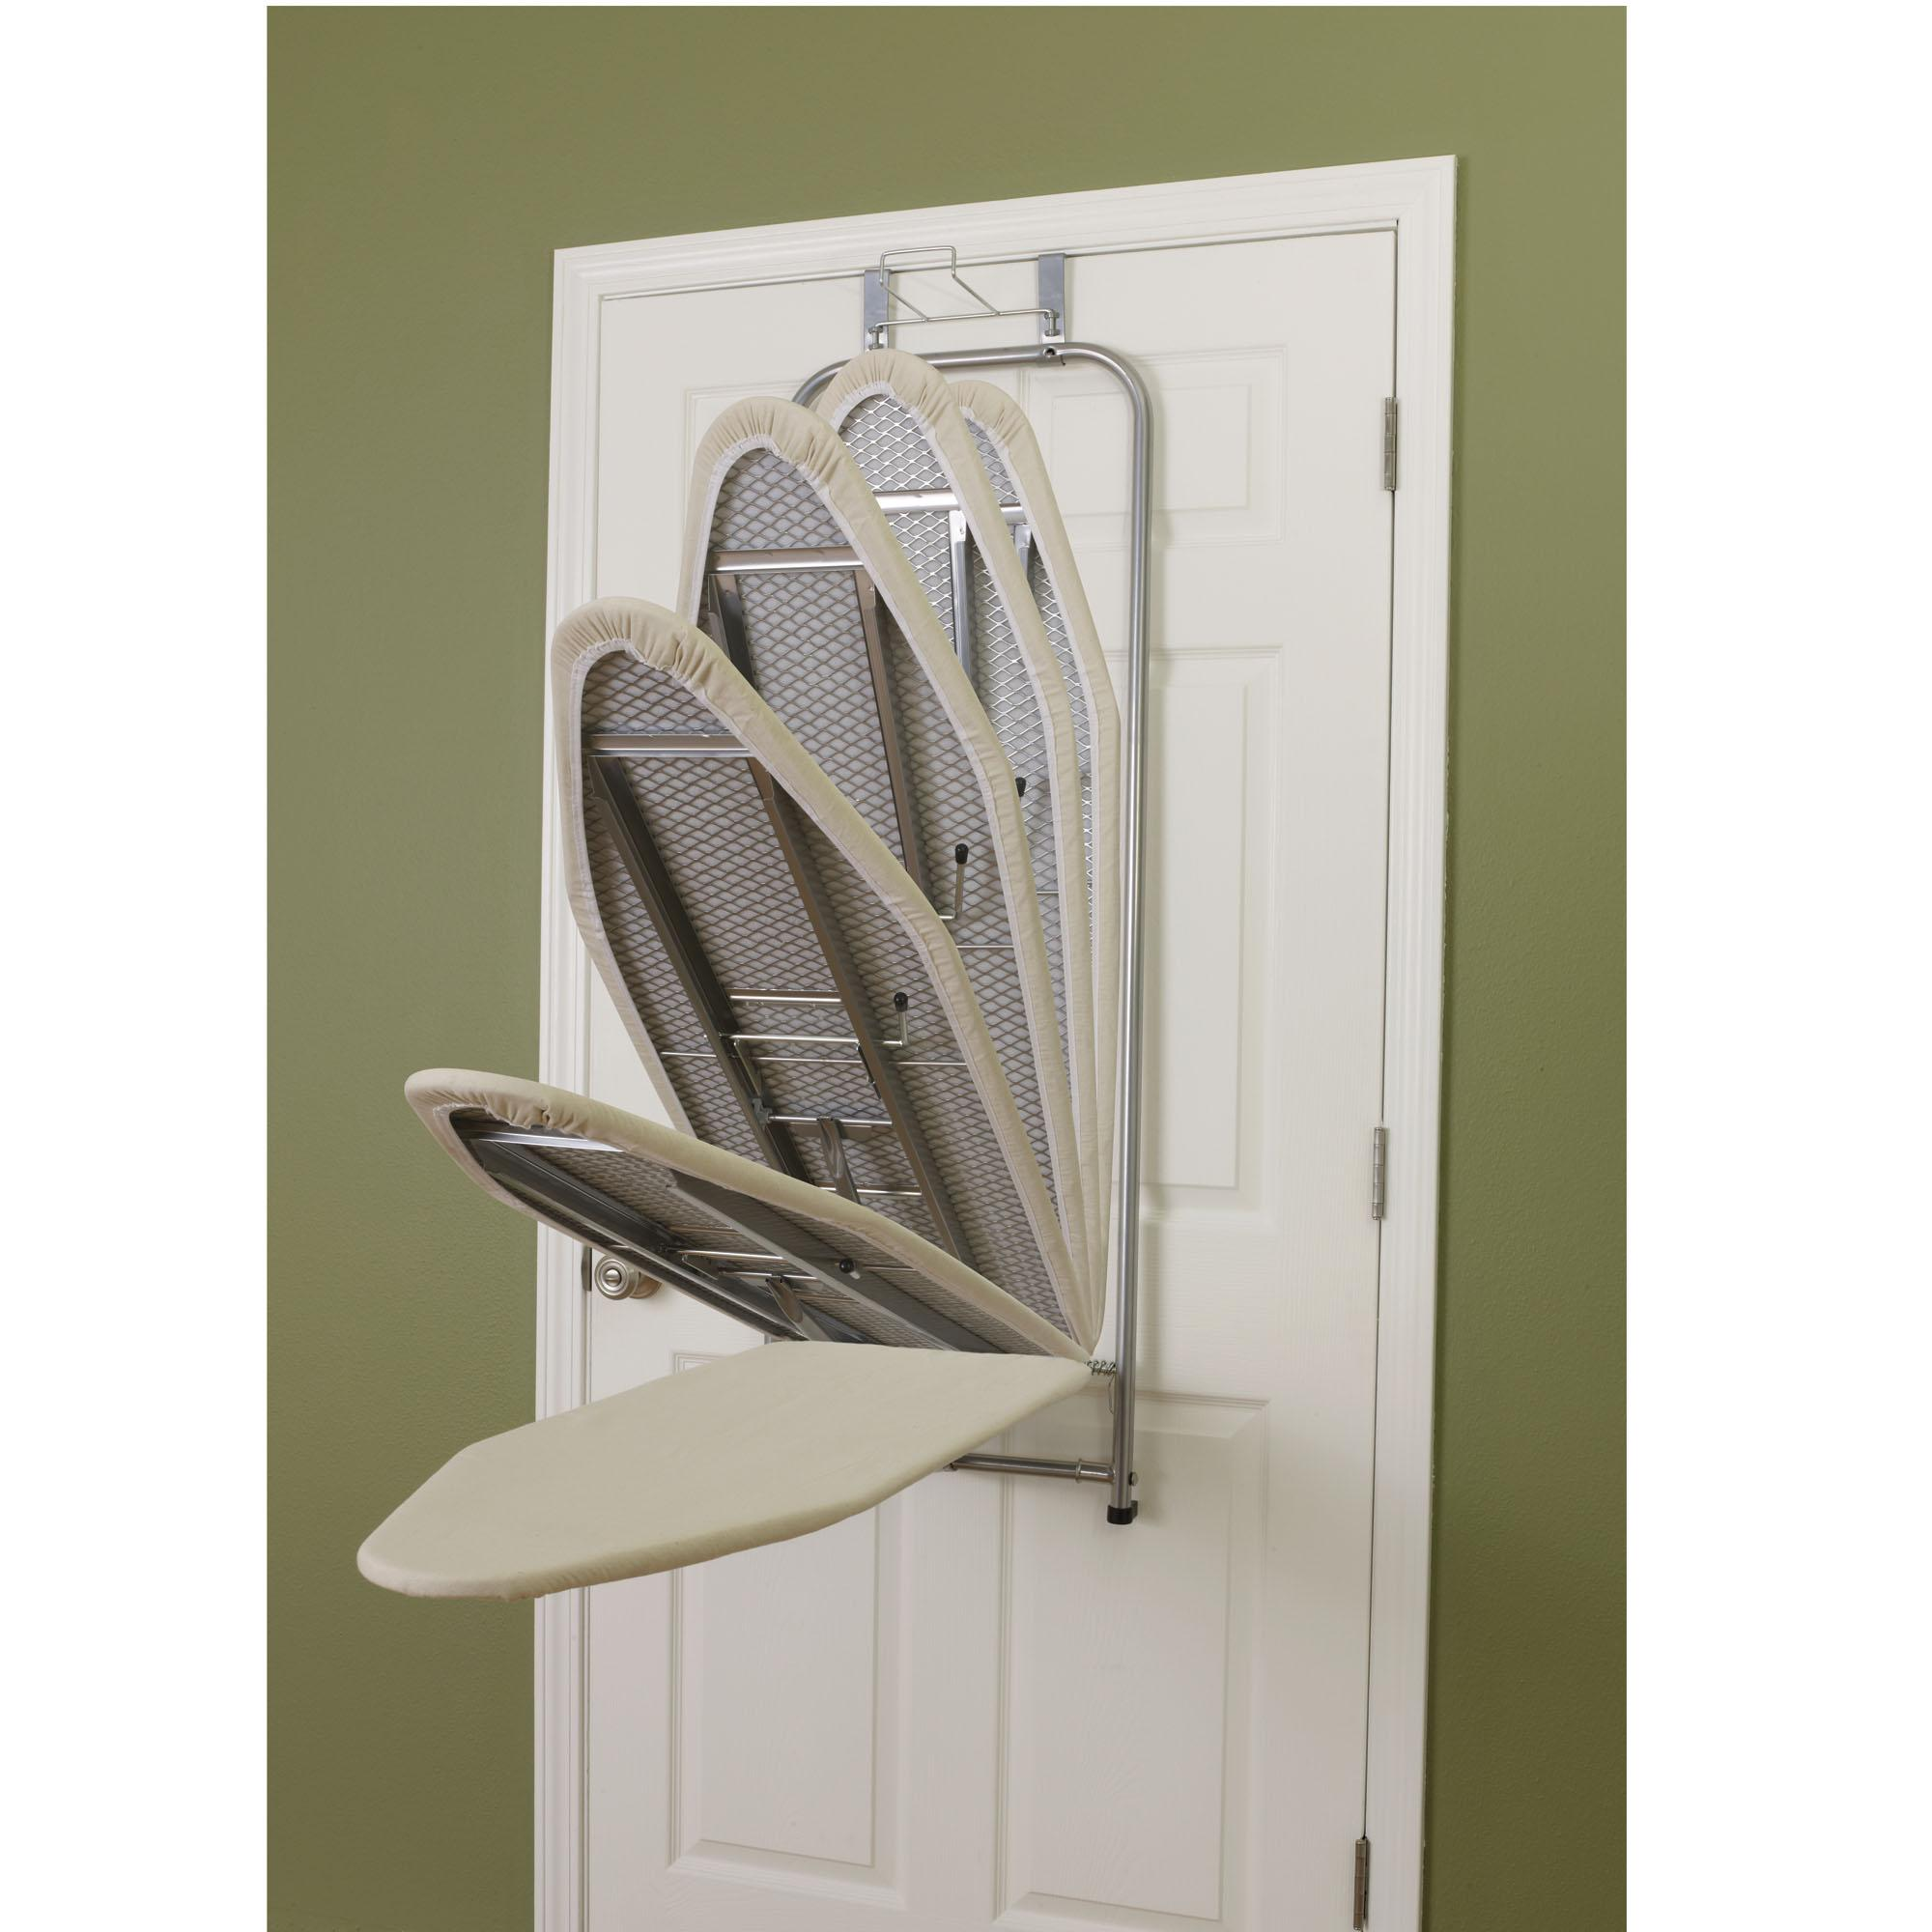 Fold up ironing board - From The Manufacturer